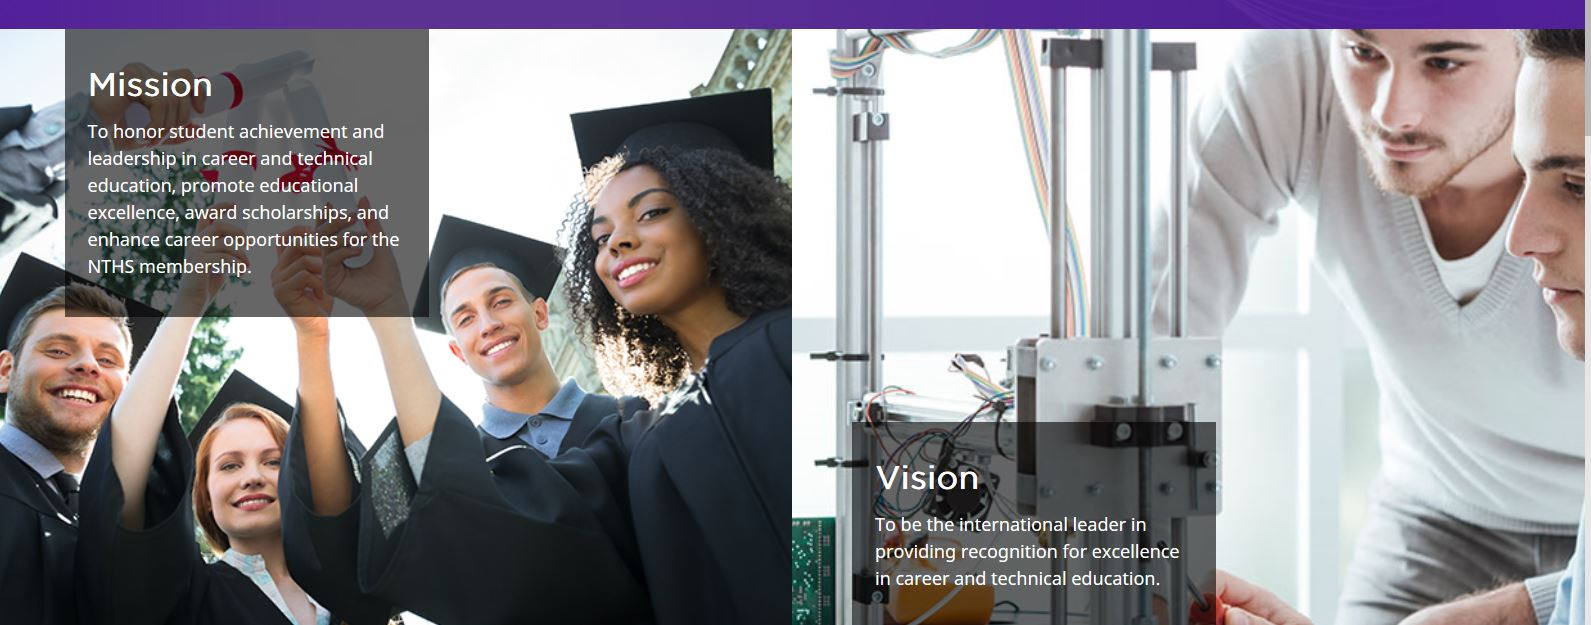 graduates-students images with mission and vision text